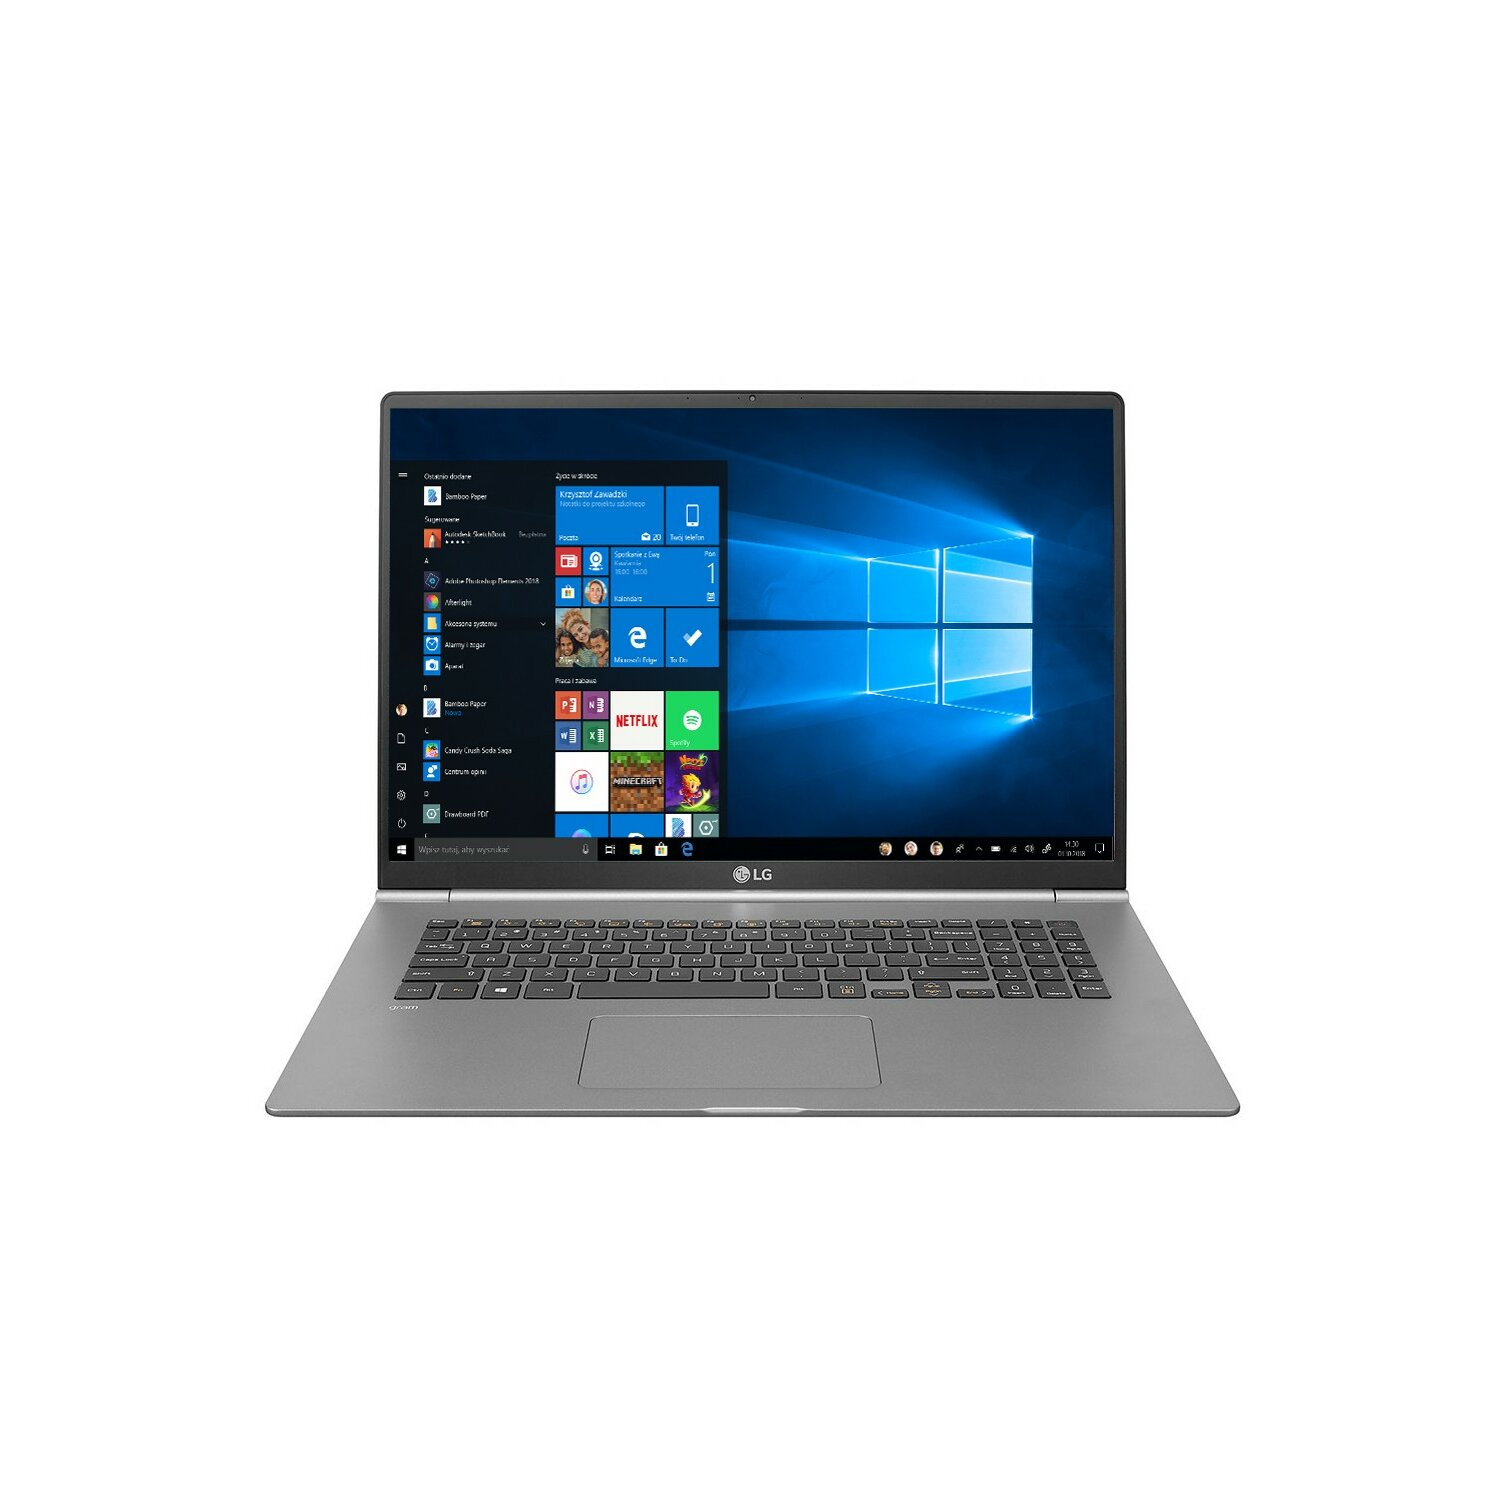 Laptop LG Gram 17Z990 i7-8565U/8GB/512GB SSD/INT/Win10H Srebrny